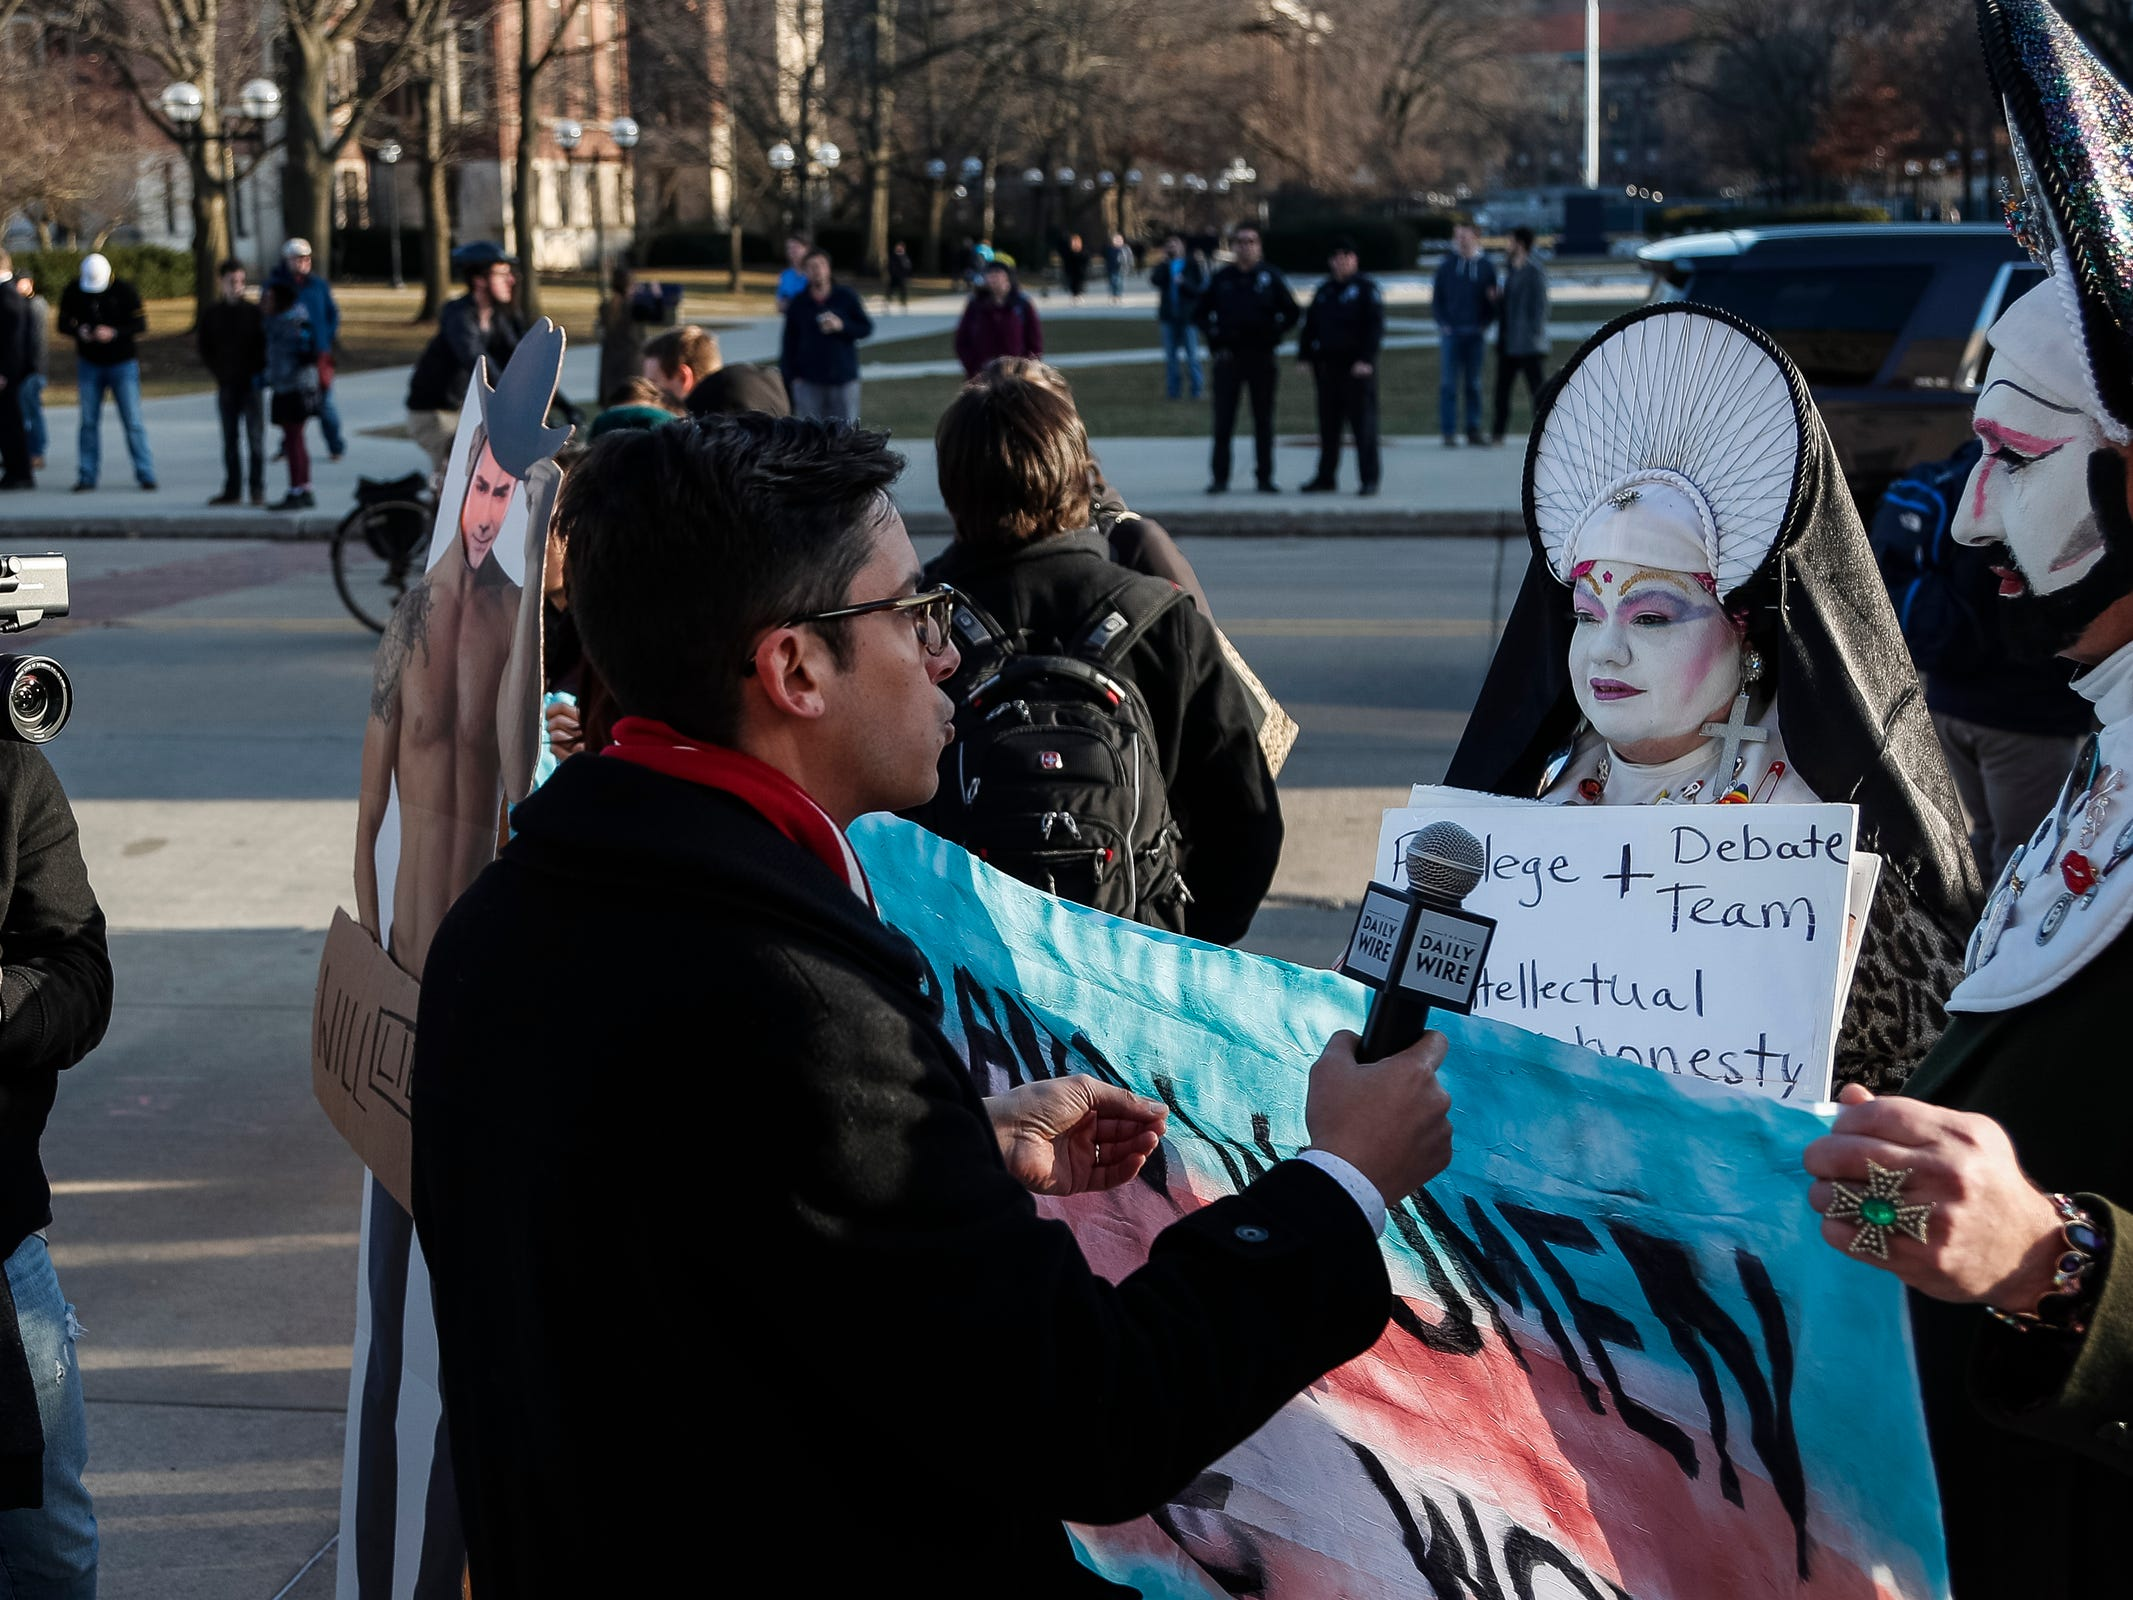 Michael Knowles, a show host from the Daily Wire, center, interviews Motor City Sisters of Perpetual Indulgence's Sister Ima W Anchor, far right, who shows her support transgender women outside of the Rackham Auditorium on U-M central campus in Ann Arbor, Tuesday, March 12. , Tuesday, March 12, 2019.